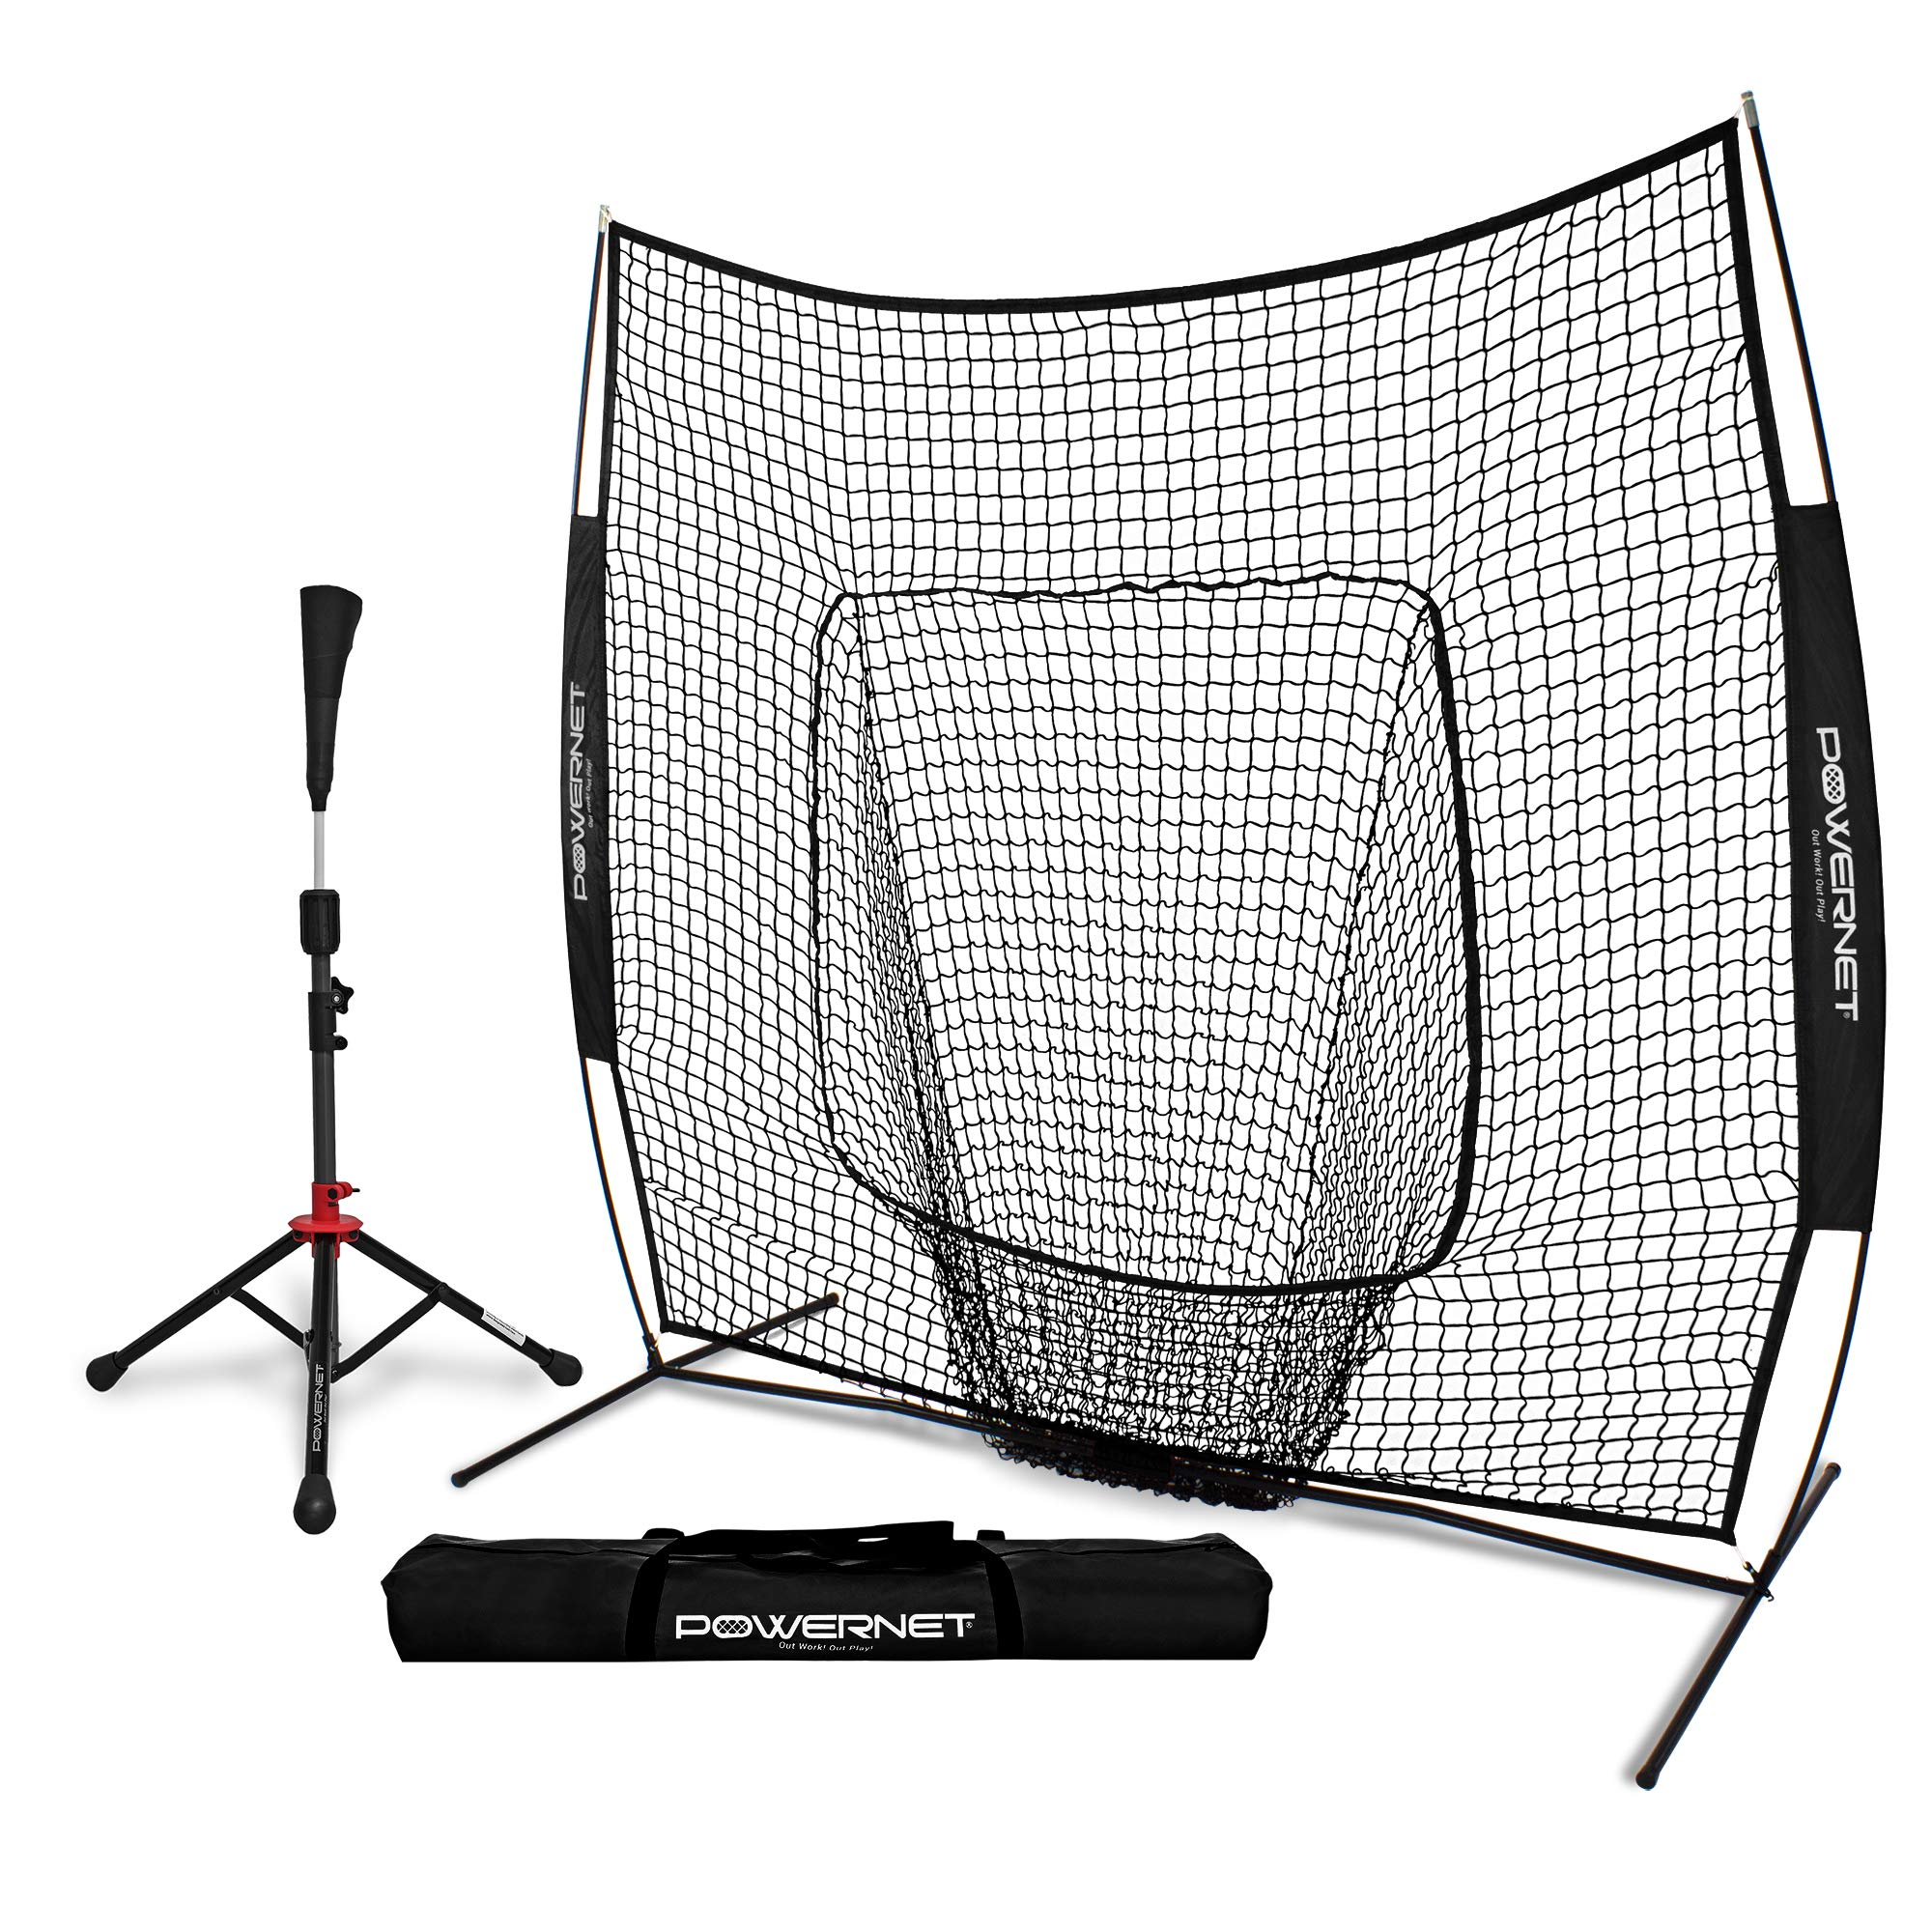 PowerNet Baseball Softball Practice Net 7x7 with Deluxe Tee (Black) | Practice Hitting, Pitching, Batting, Fielding | Portable, Backstop, Training Aid, Lg Mouth, Bow Frame | Training Equipment Bundle by PowerNet